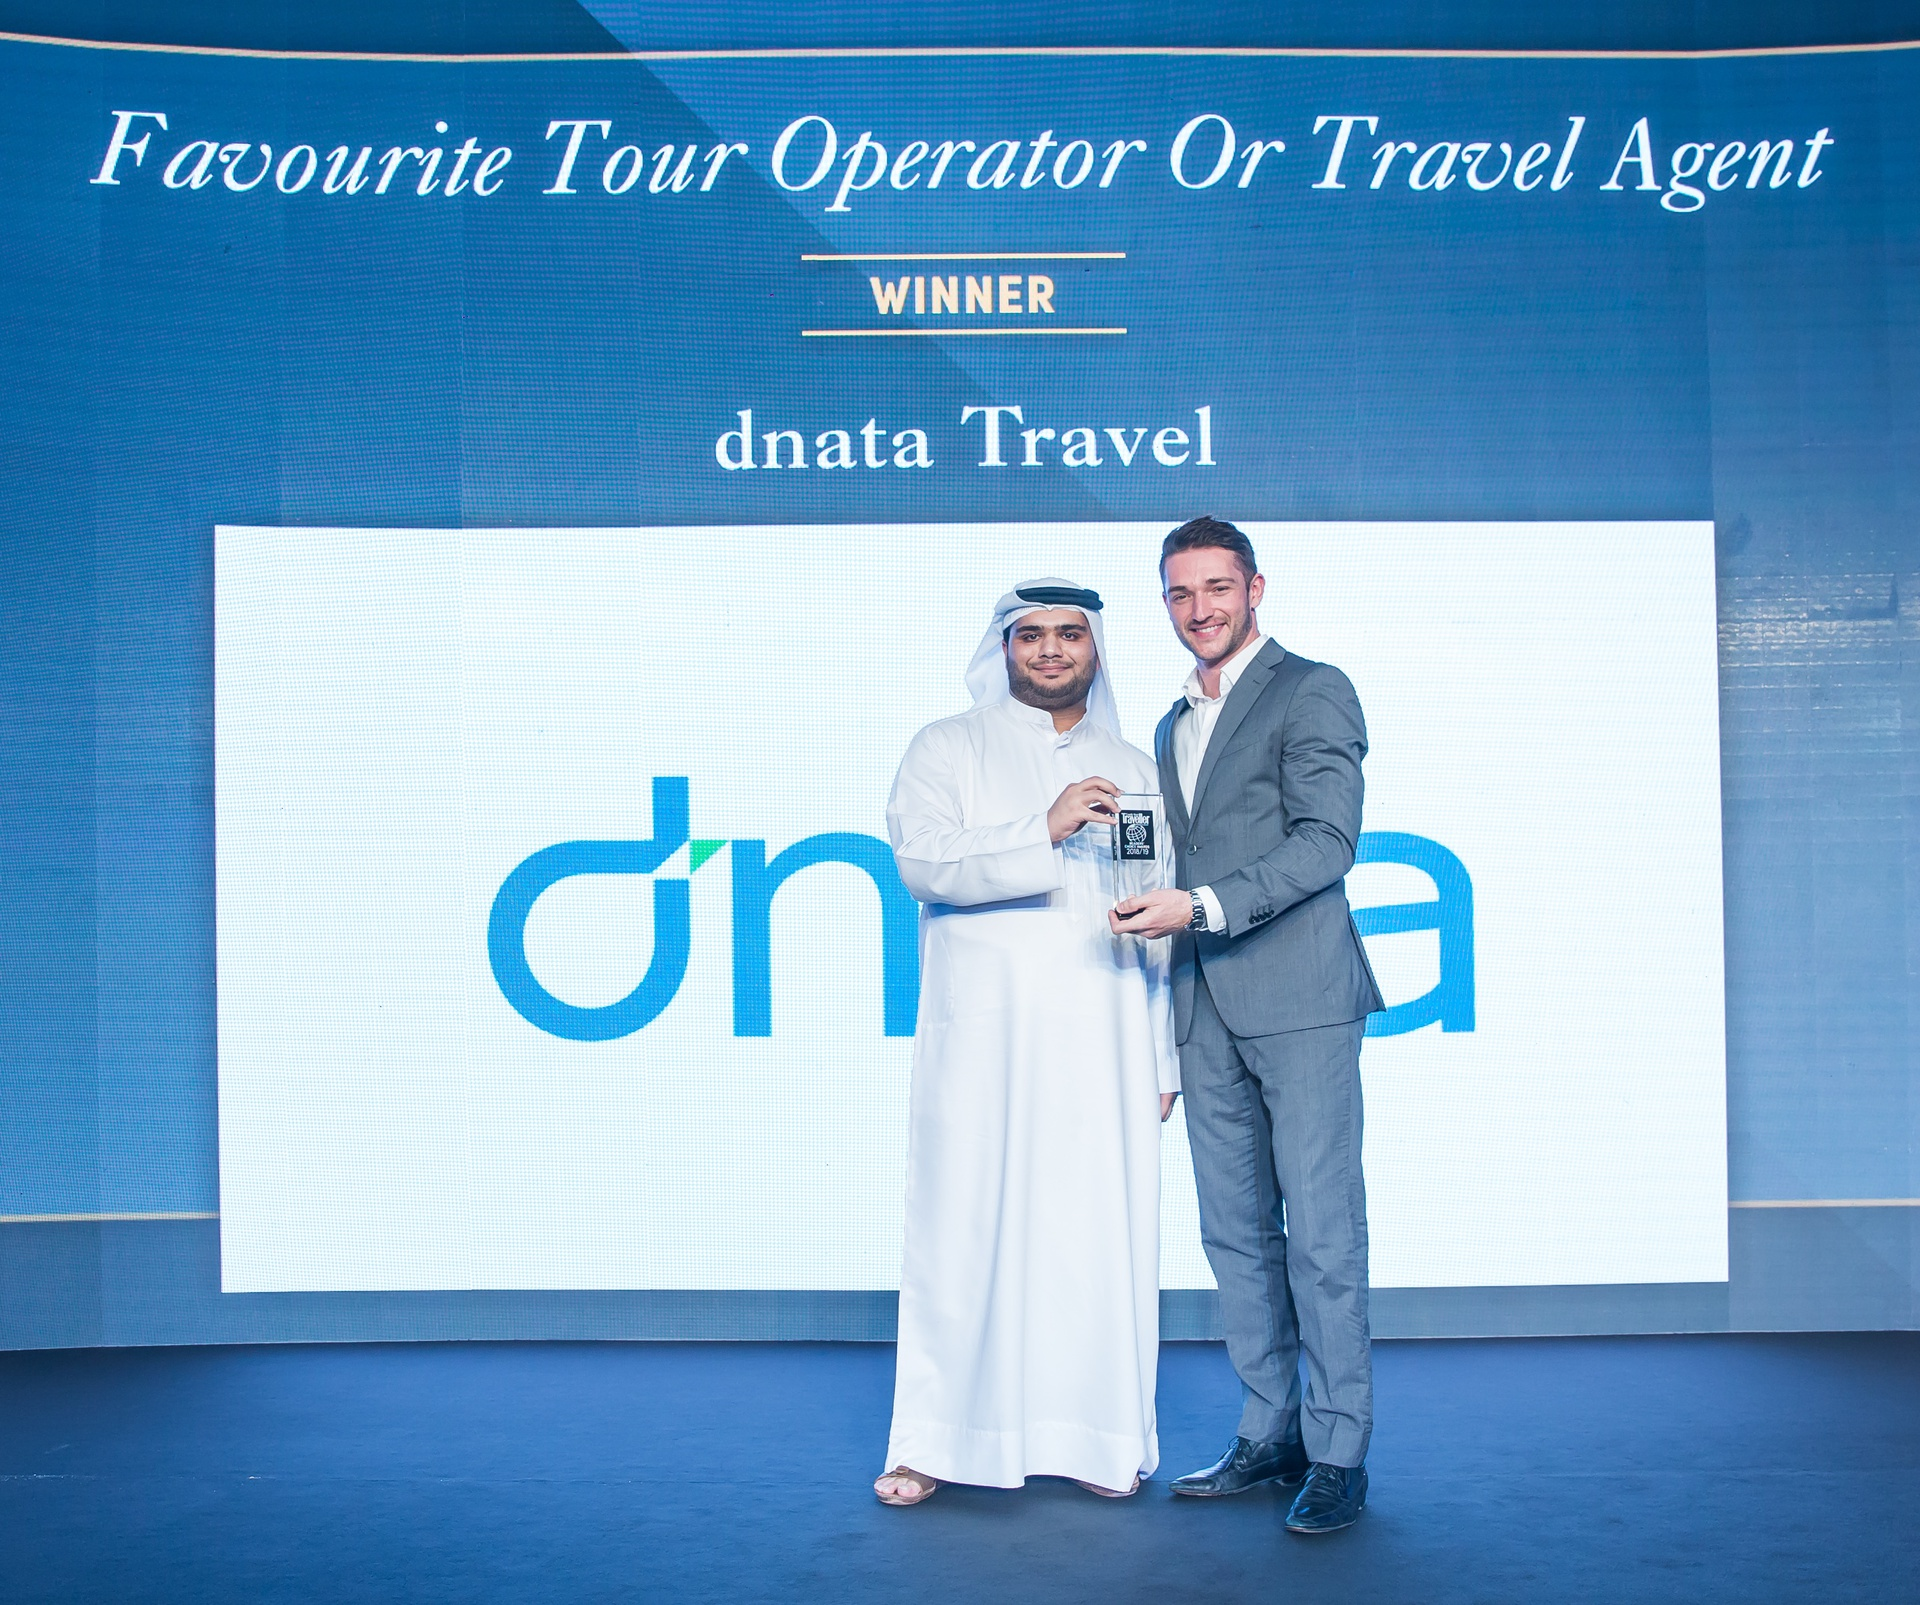 dnata_Travel-981784.jpg